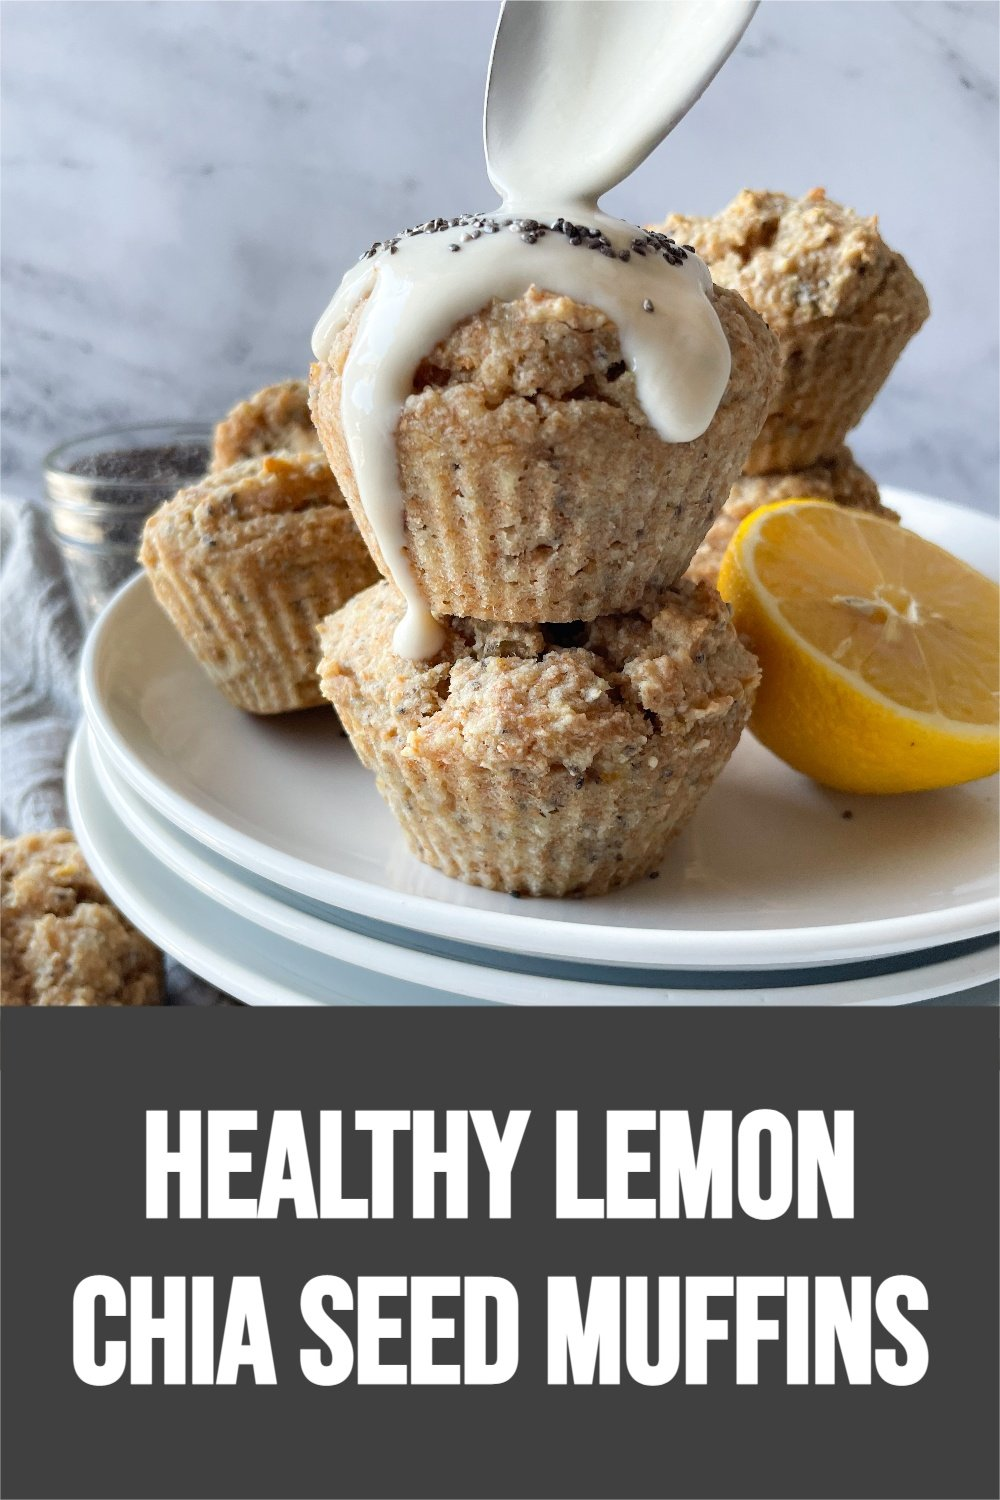 stacked lemon chia seed muffins with text overlay